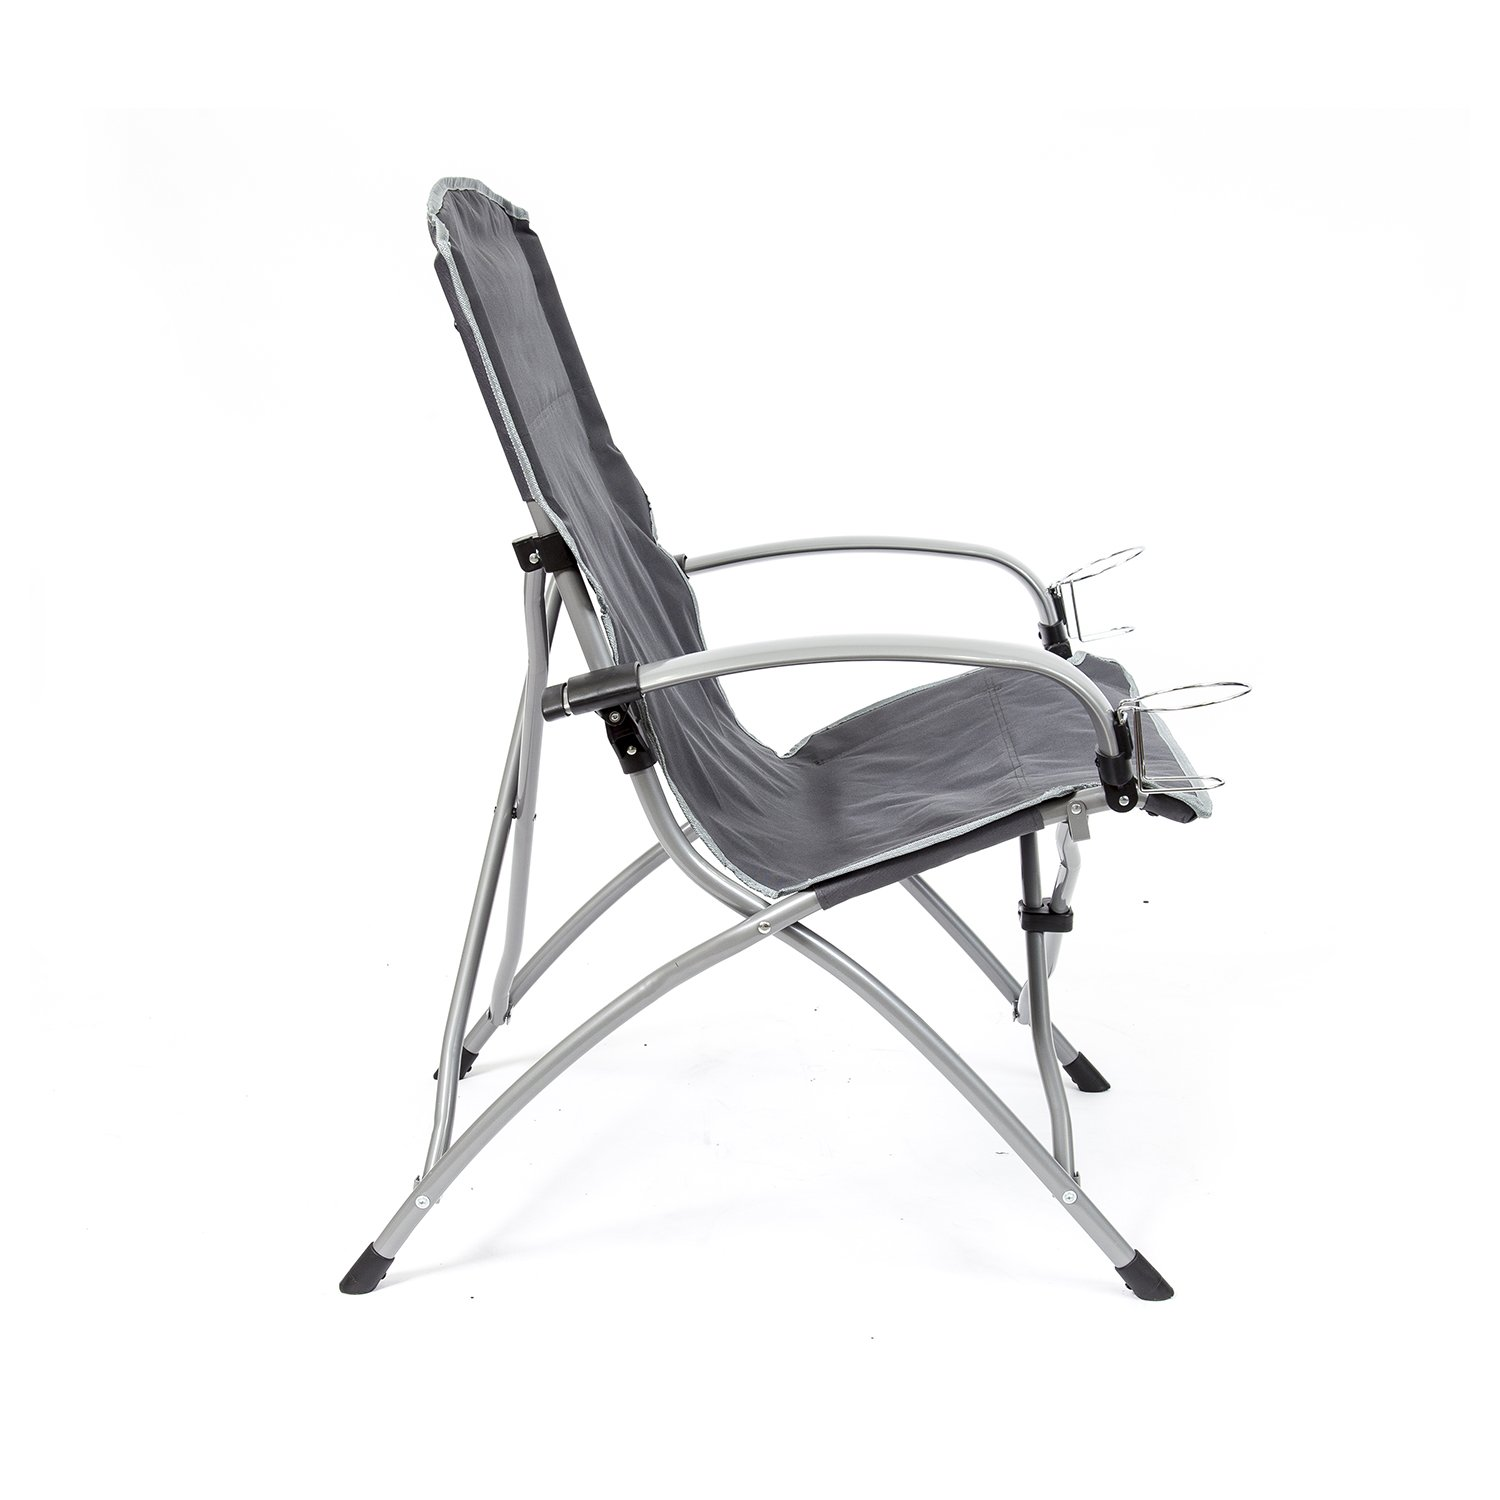 Amazon The mander Folding Armchair Grey Patio Lawn